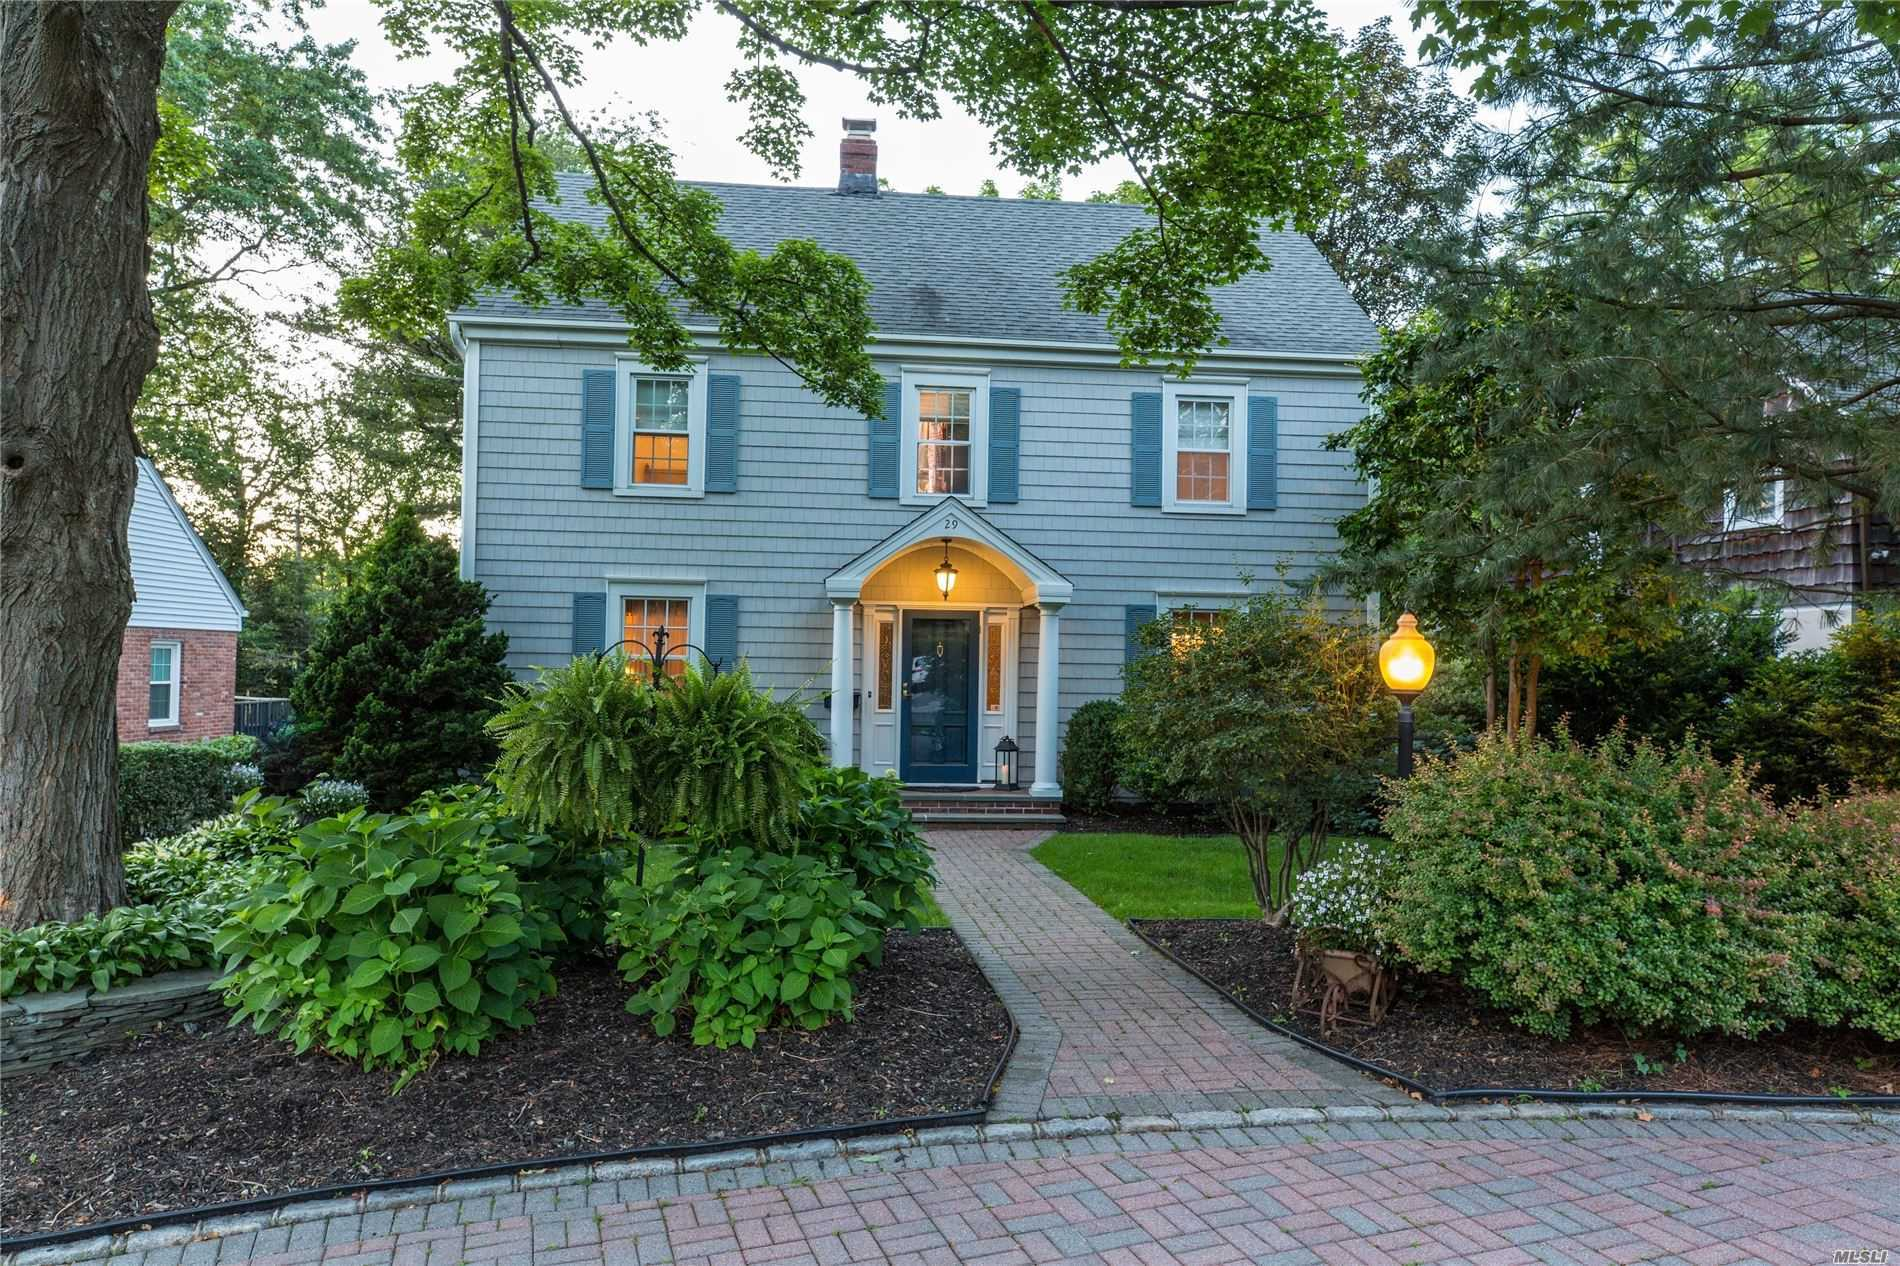 Beautiful BH colonial, updated and meticulously maintained. Offers 4 BRs/2.5 BTHs. Renovated, expanded kitchen w/high-end appliances, island, radiant heat leads to bi-level deck and large yard. LR w/FP, FR, formal DR, powder on first. Second offers master ensuite w/ expanded, reno bath and radiant heat. Three additional BRs, full bath renovated w radiant heat. Finished basement and finished walk-up attic. CAC, all systems replaced and updated, sprinklers, alarm. Just .7 miles from LIRR.